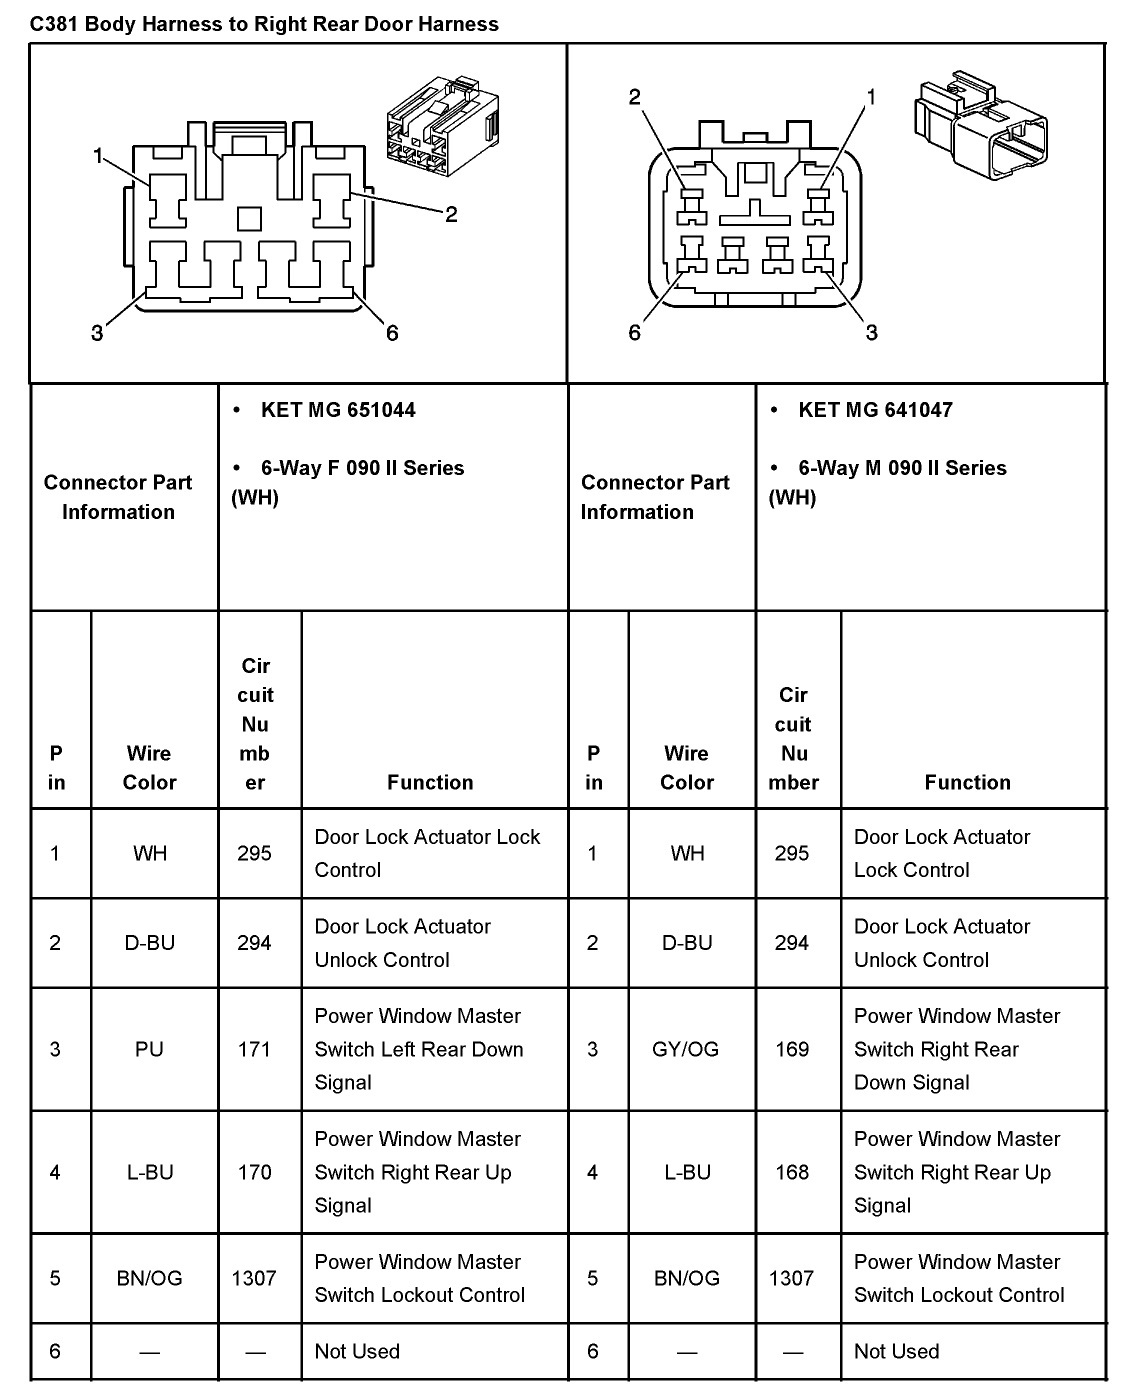 2010 Chevy Aveo Wiring Diagram Headlight 40 Images Hhr Harness 7359d1383706233 2005 Master Connector List Diagrams Ma13 And